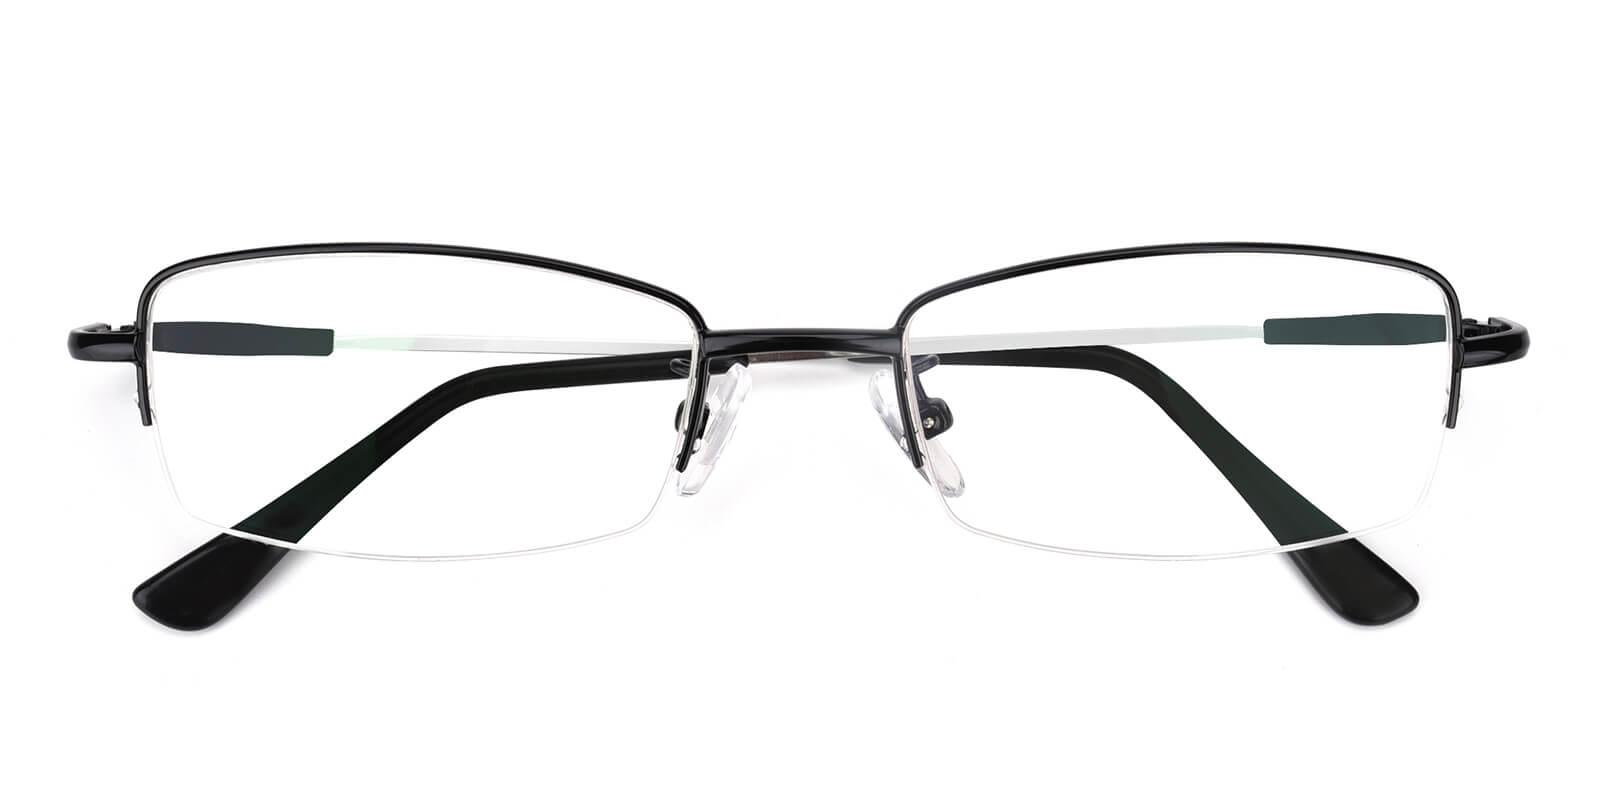 Healdton-Black-Rectangle-Metal-Eyeglasses-detail